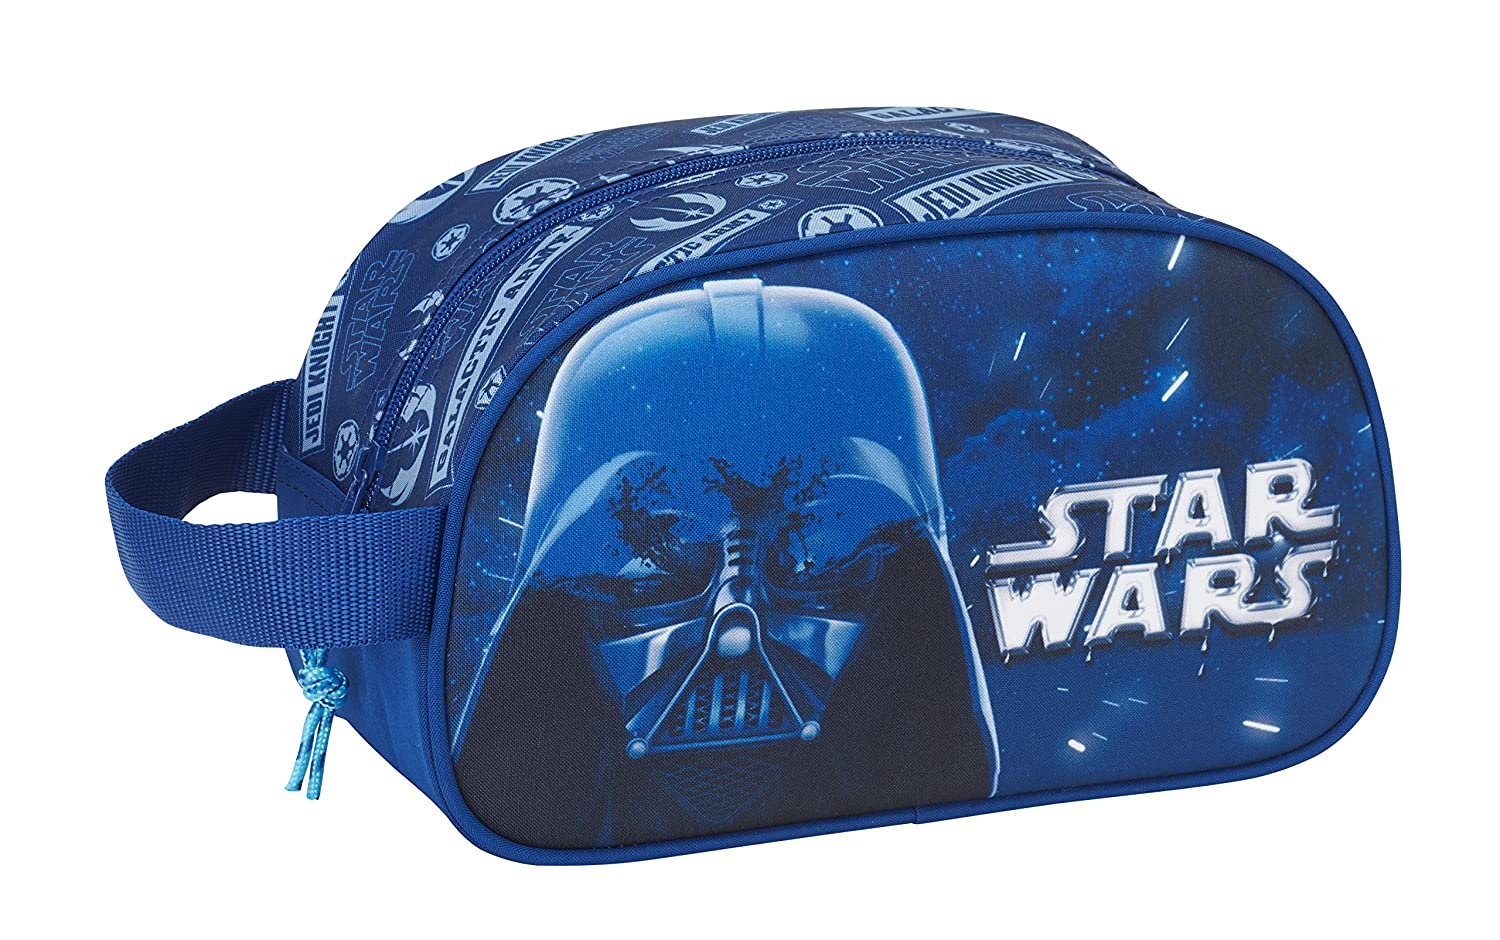 Beauty Case Star Wars Neon Ufficiale Medio, con Manico 811801248